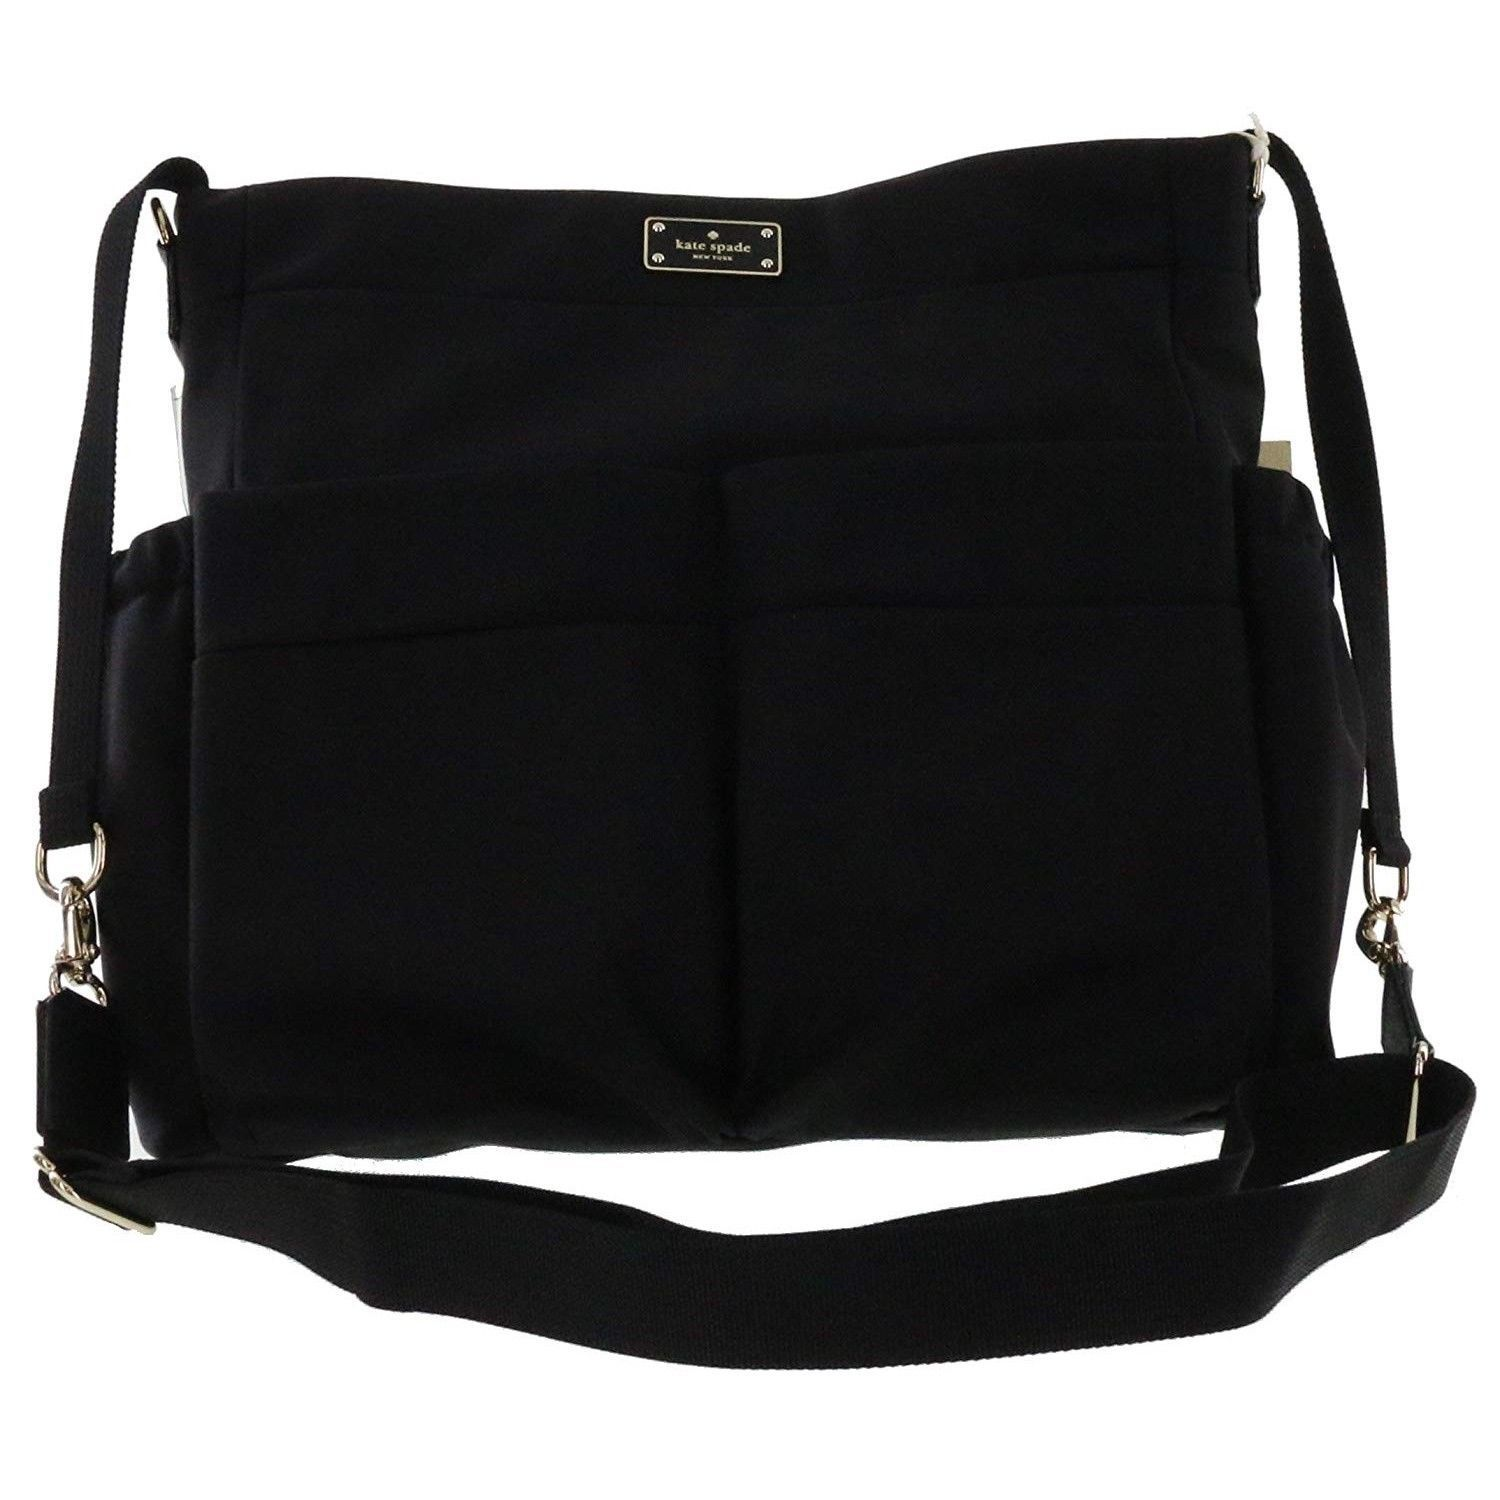 b0f0421665c5 NWT KATE SPADE NEW YORK Blake Avenue ADAMSON Baby Diaper Bag Nylon Black  4214 -  194.04